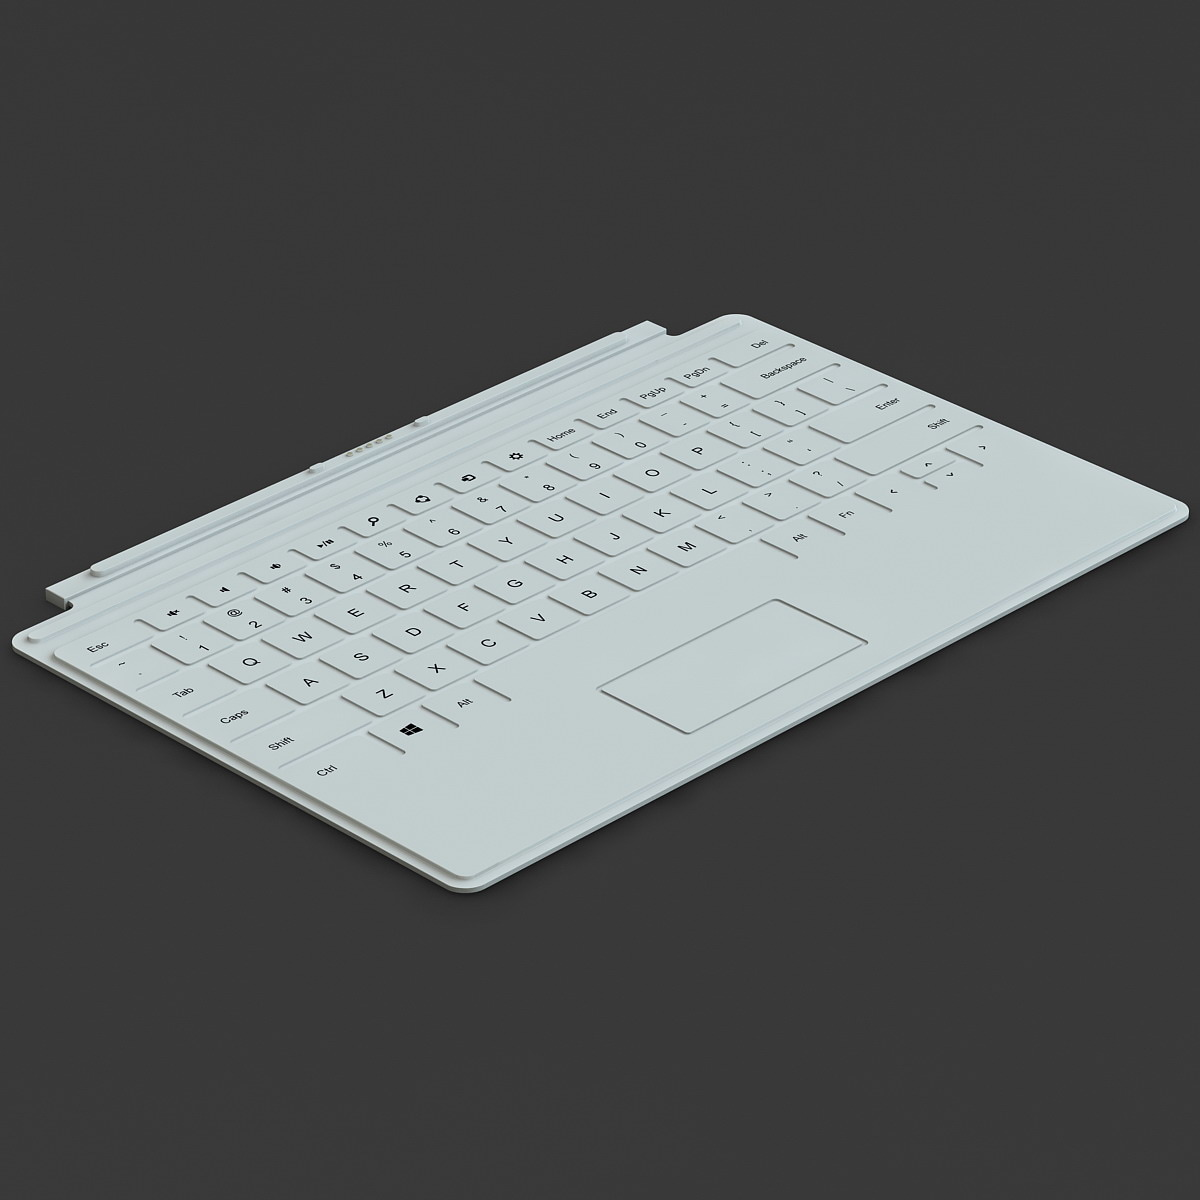 105351_Microsoft_Surface_Keyboard_004.jpg